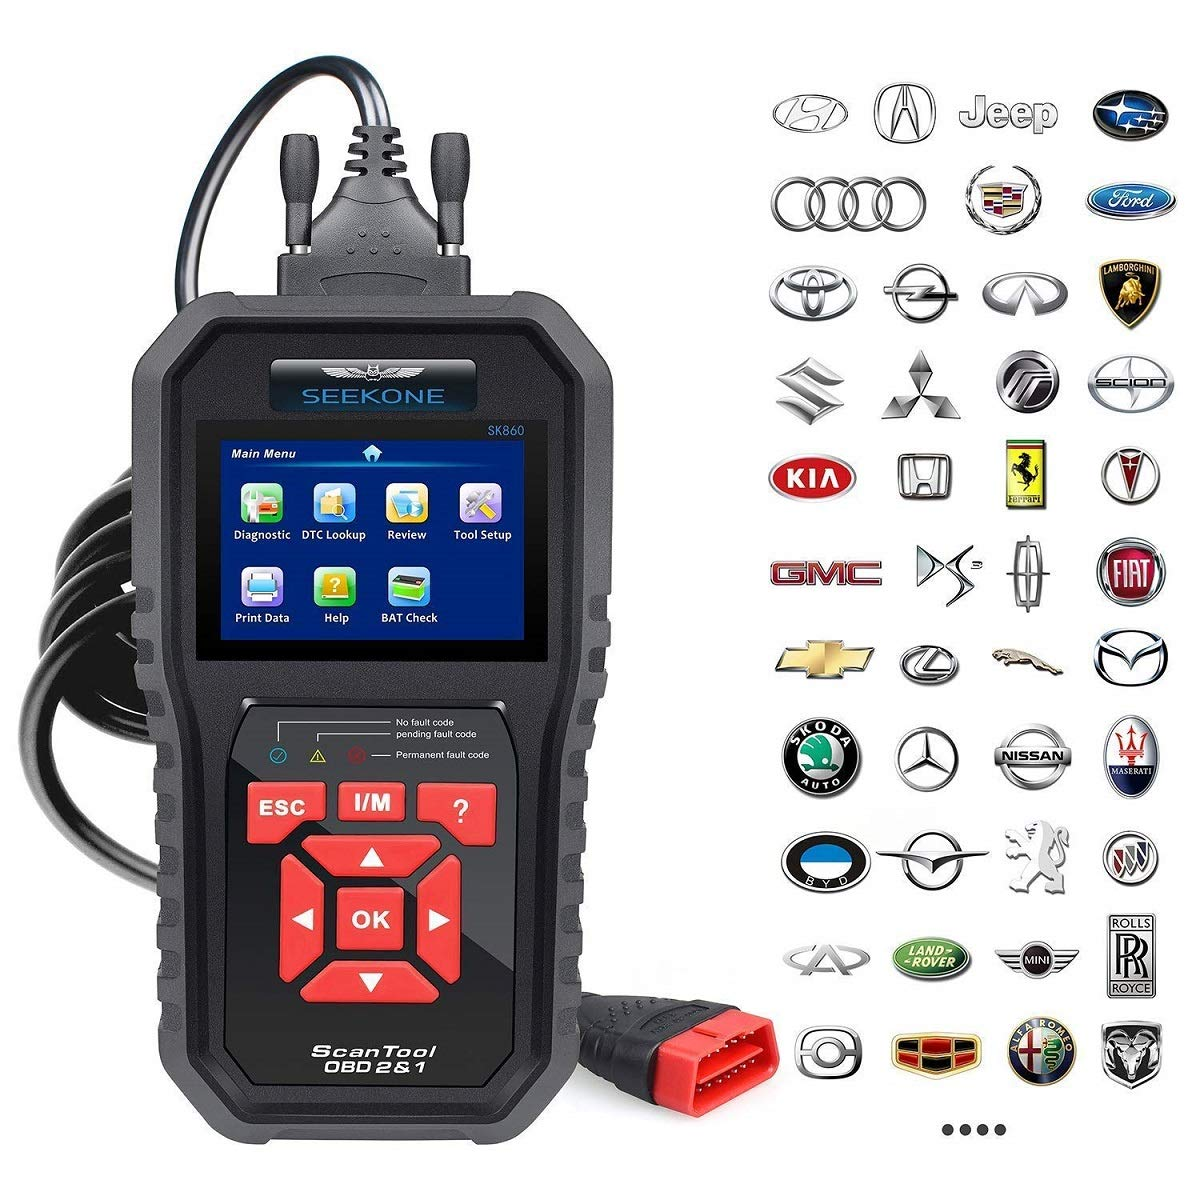 Best Car Diagnostic Scanners Reviews SEEKONE OBD2 Scanner Professional Car OBD II Scanner Auto Diagnostic Fault Code Reader Automotive Check Engine Light Diagnostic EOBD Scan Tool for All OBDII Protocol Cars Since 1996(Enhanced SK860)